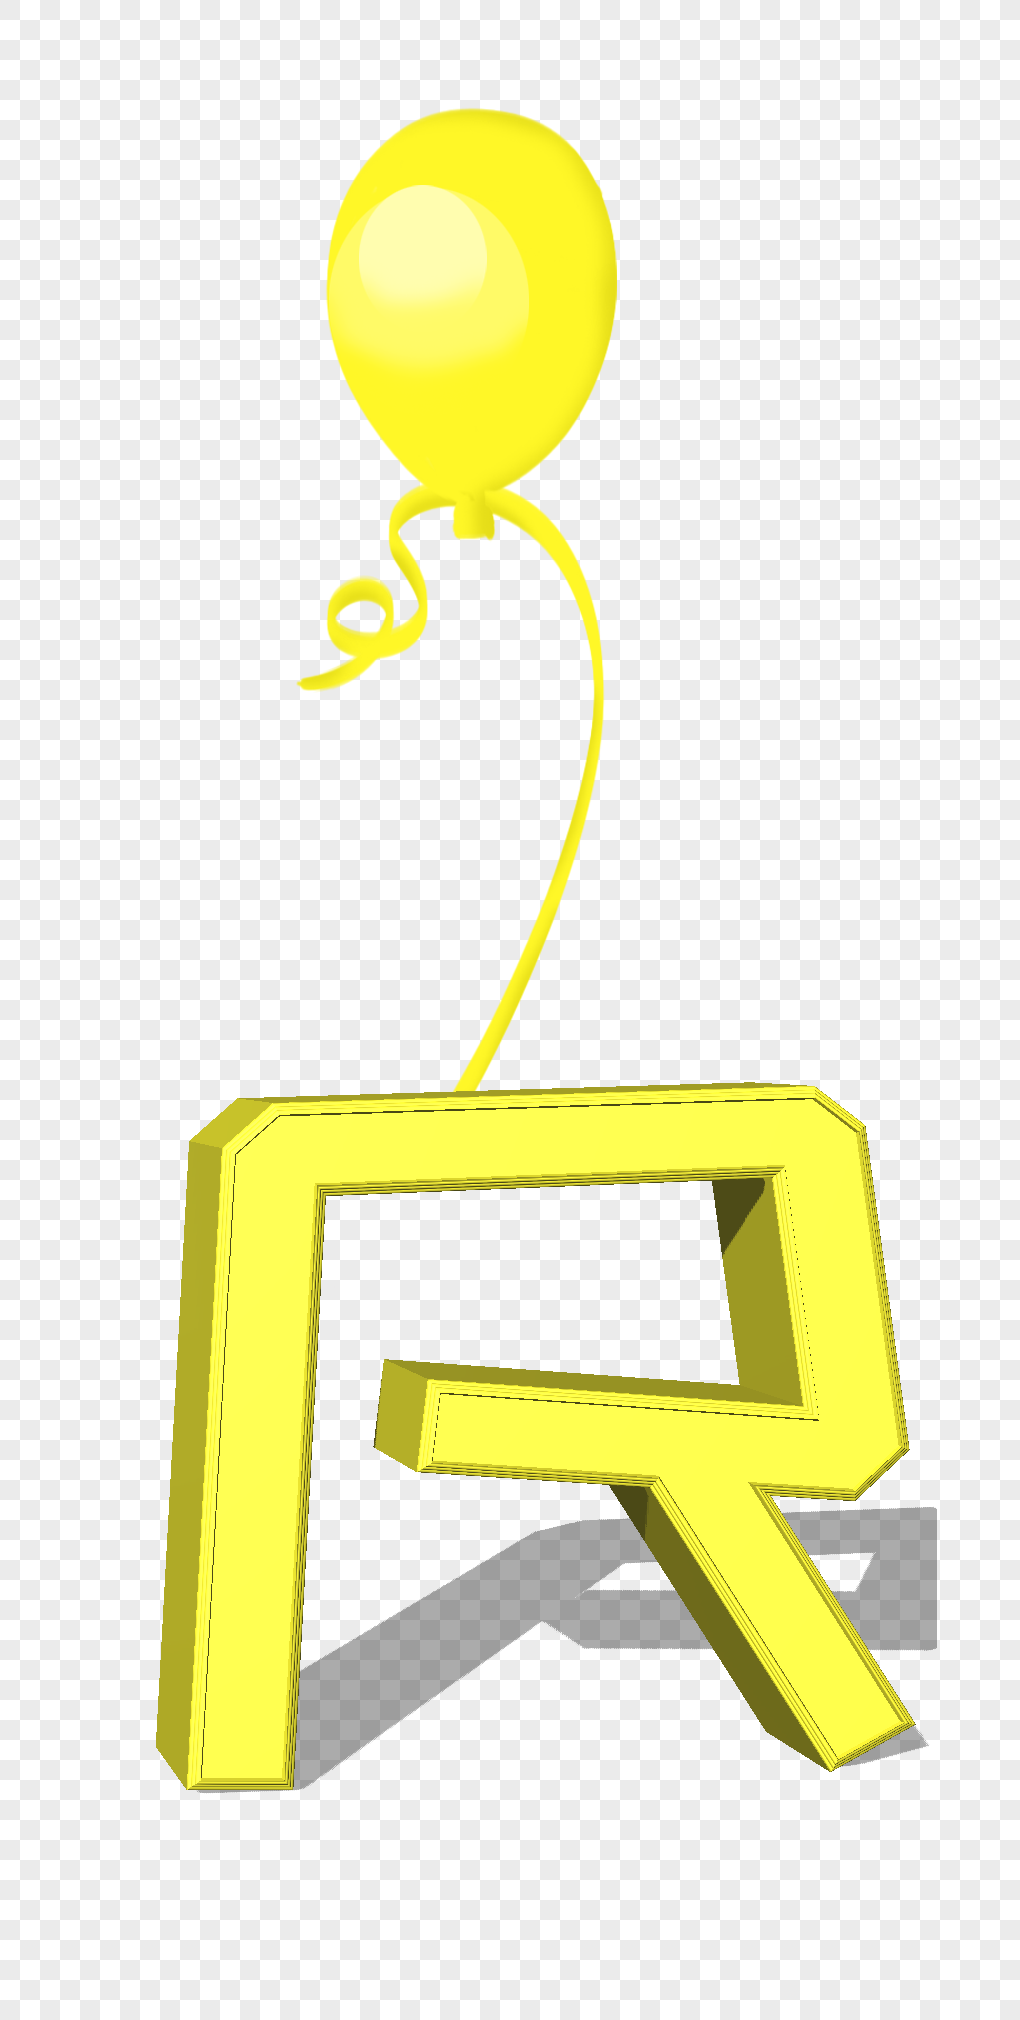 The Golden Letter R Png Image Picture Free Download